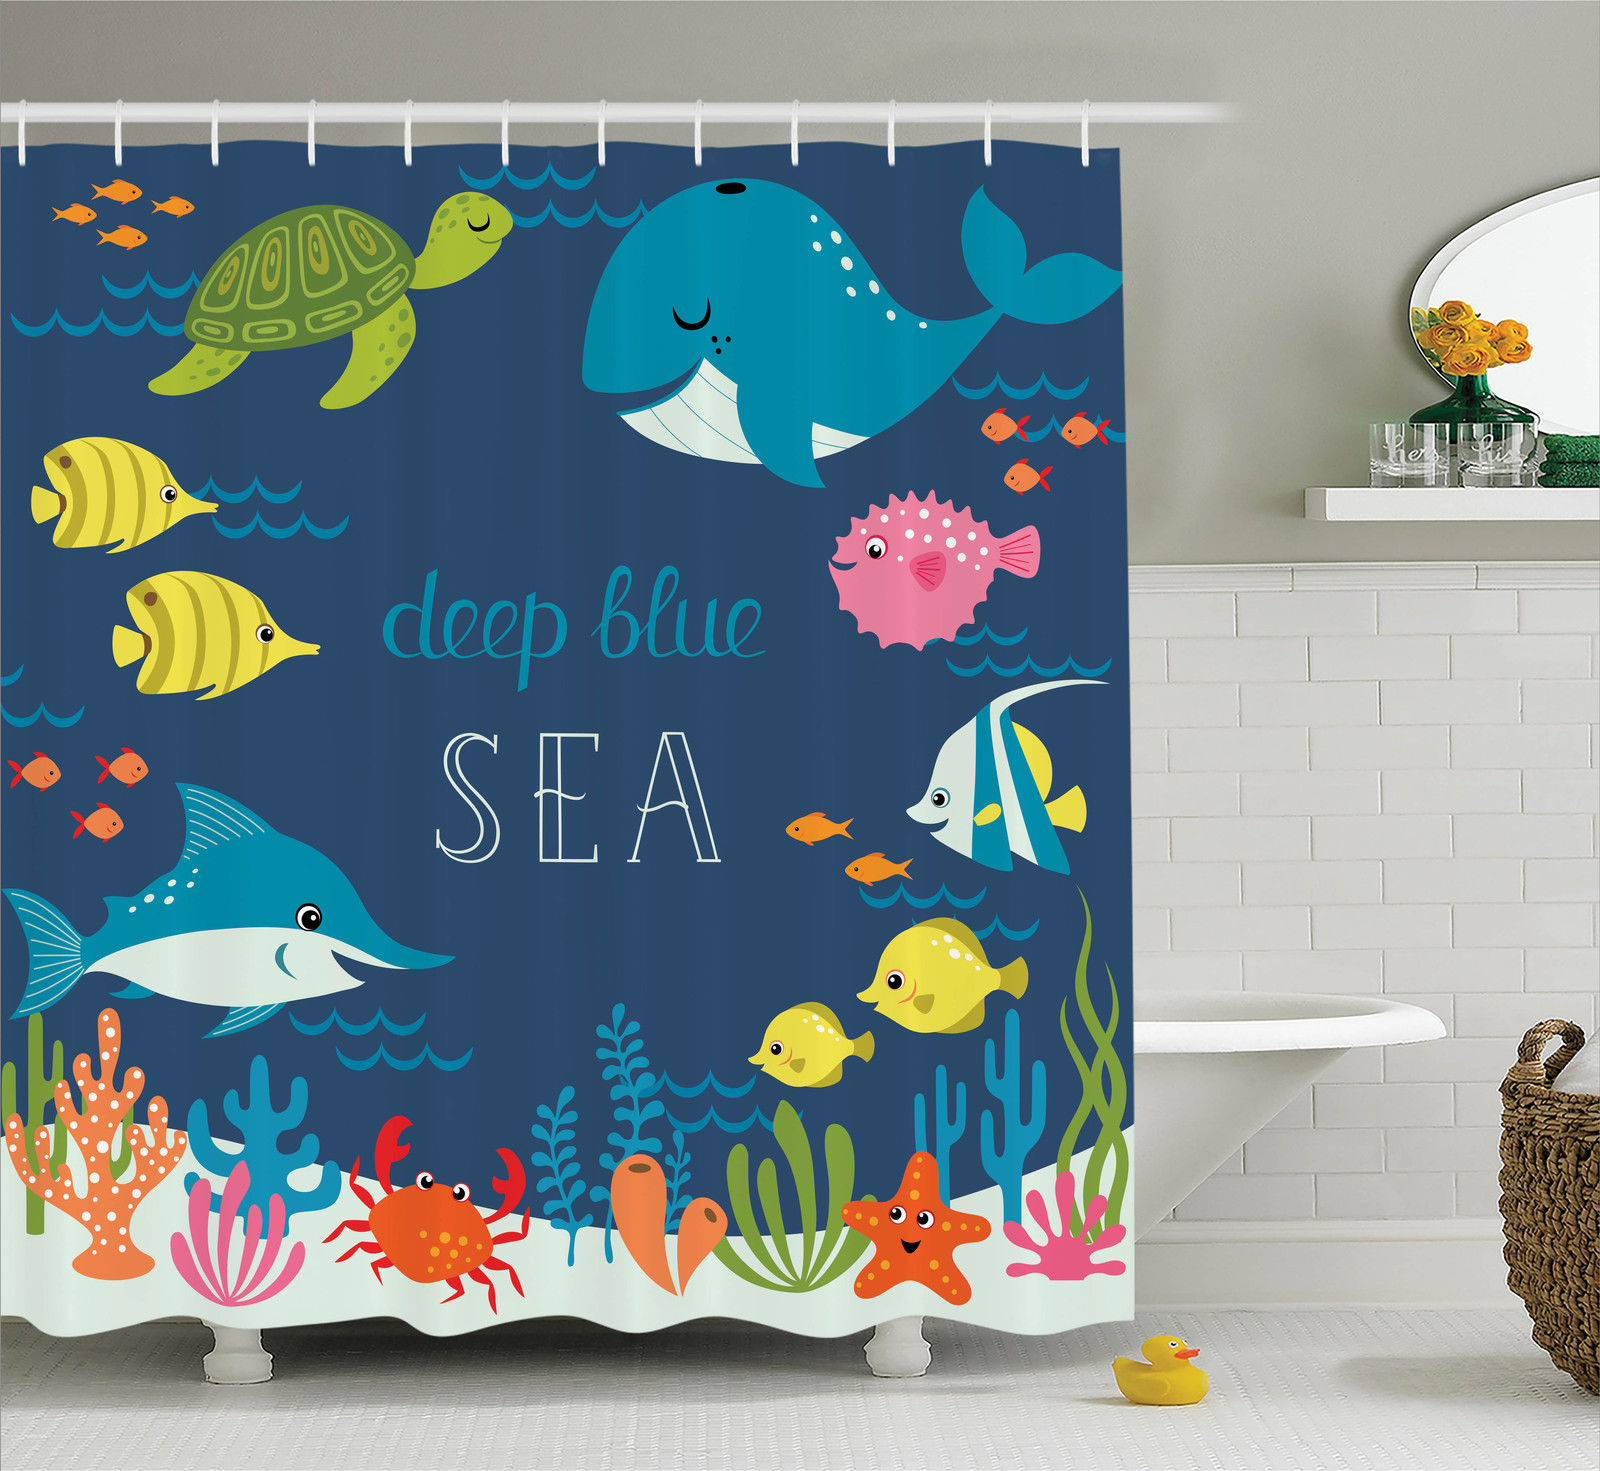 Cartoon Decor Artsy Underwater Graphic With Algaes Coral Reefs Turtles  Sword Fishes The Life Aquatic Motion